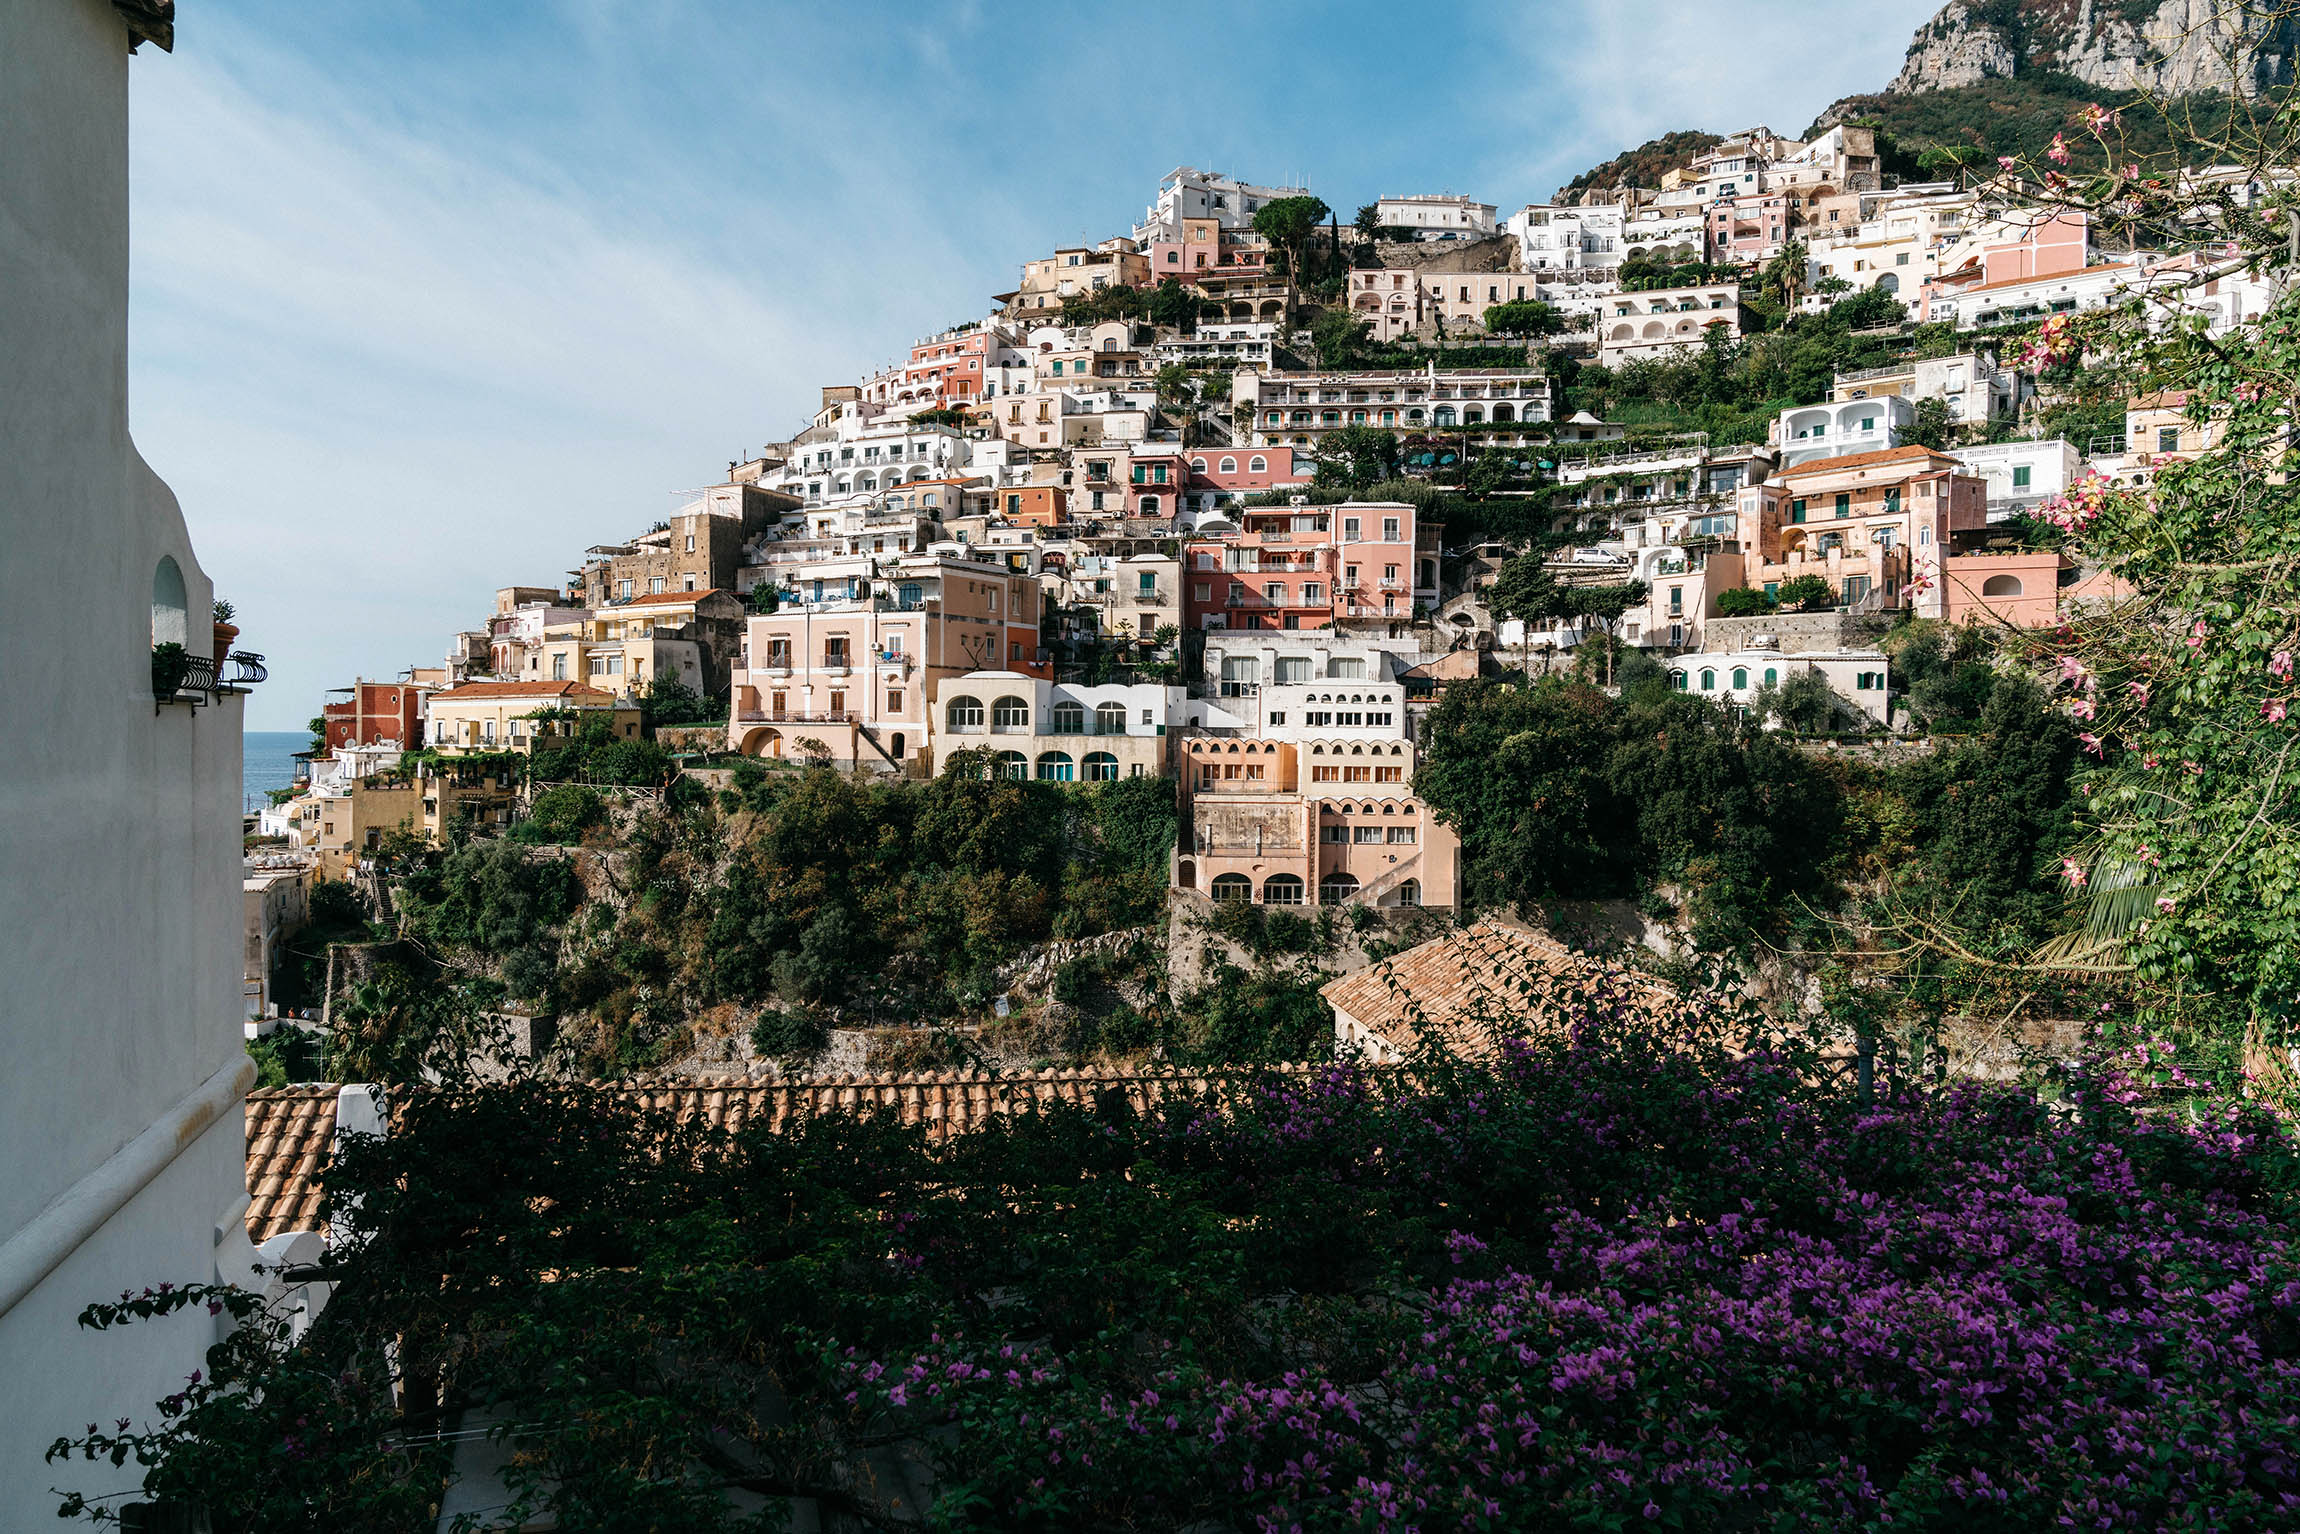 Another picturesque view of Positano en route from our hotel  Casa Angelina  to take a ferry to Capri